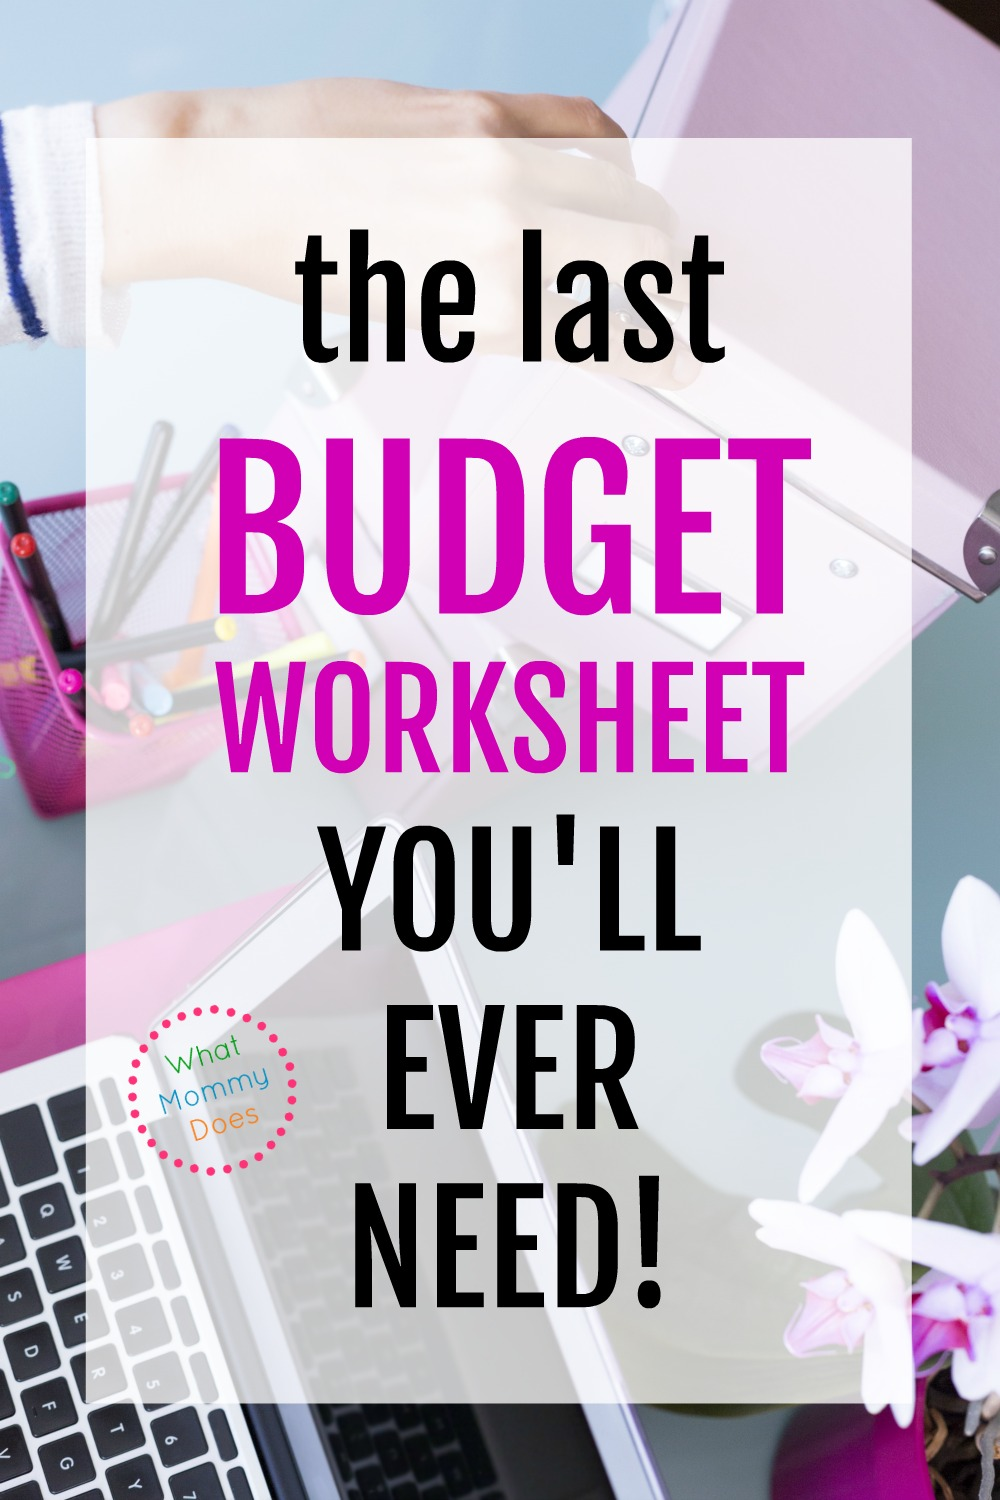 This Is An Awesome Family Budget Template! It's Freed Up Tons Of Time. I